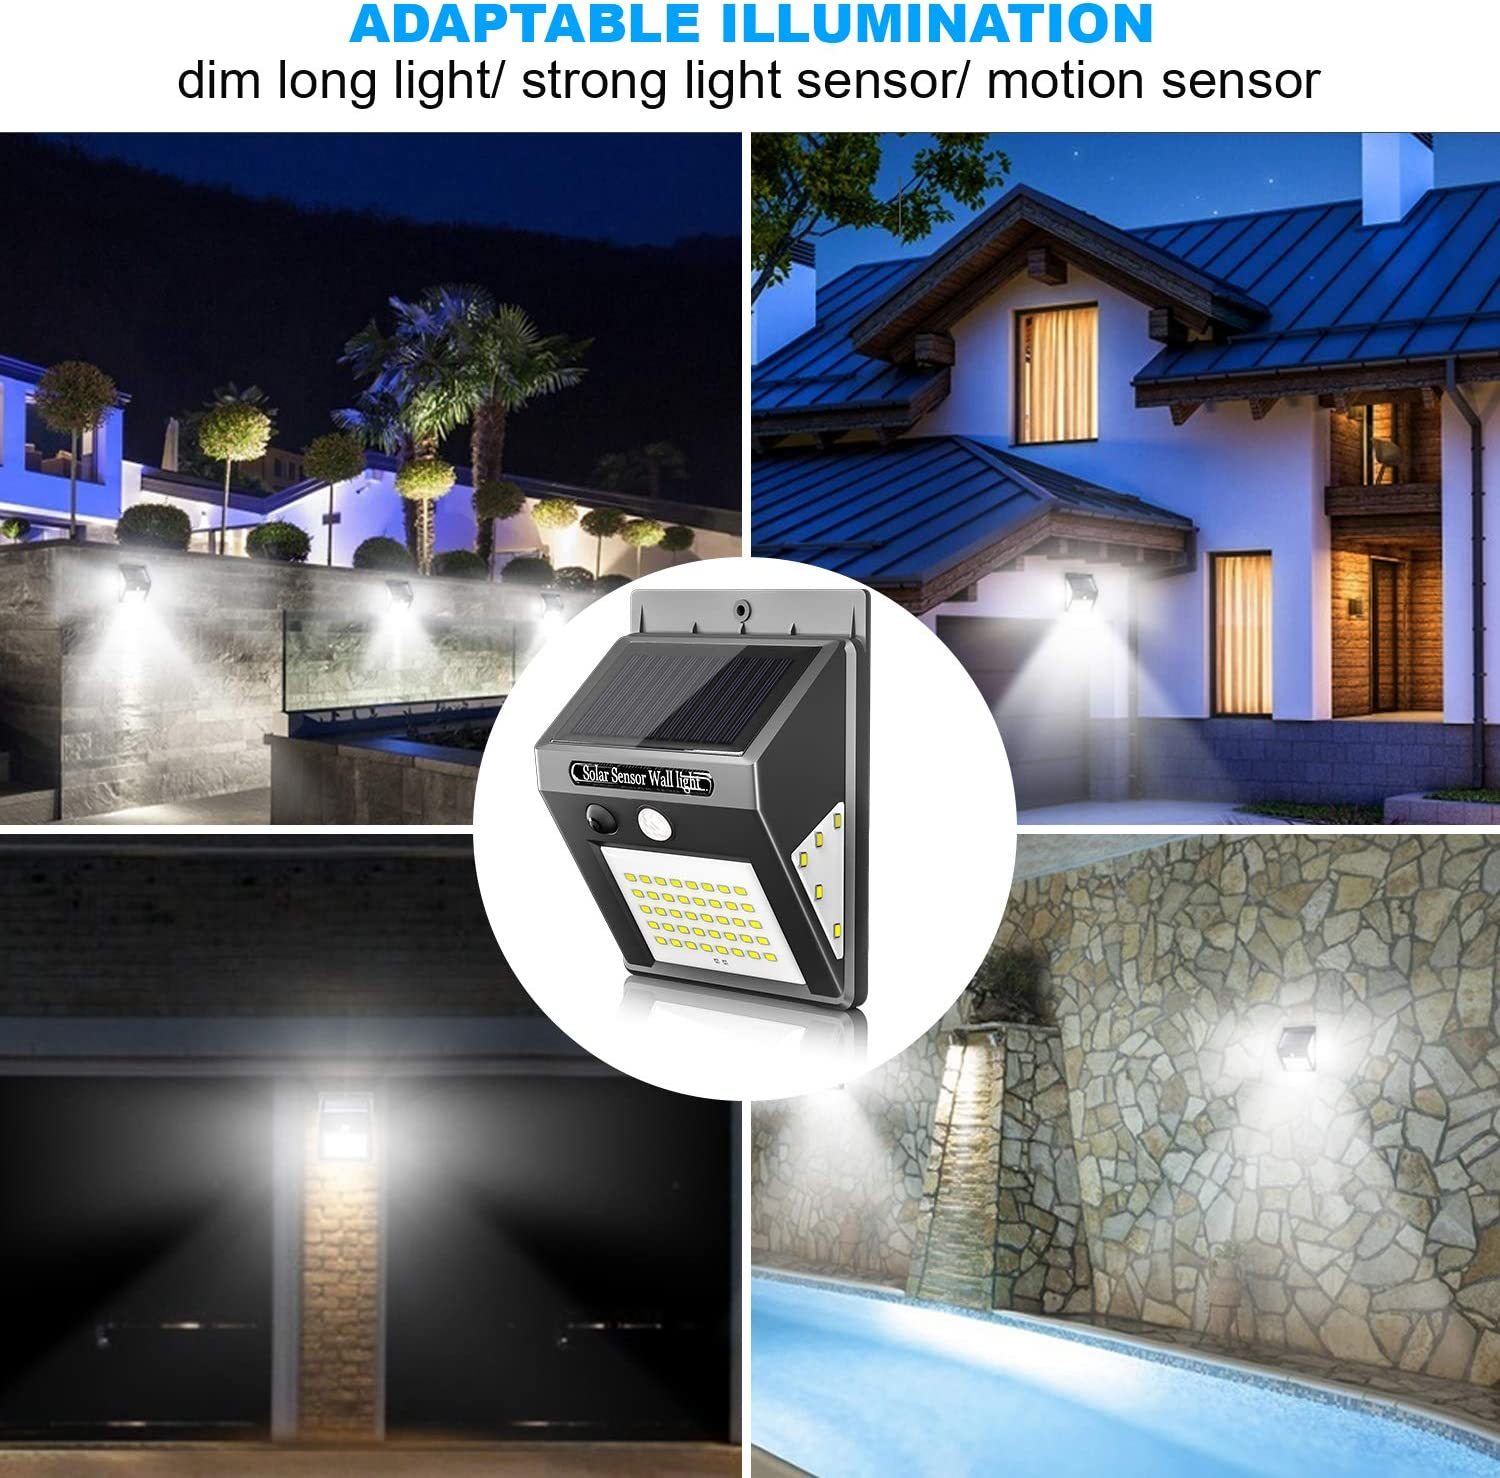 50 LED//3 Working Mode 270/° Wide-Angle Solar Motion Sensor Lights Wireless Waterproof Outdoor Lights for Garden Fence Patio Garage Pool 2 Pack Karrong Solar Lights Outdoor